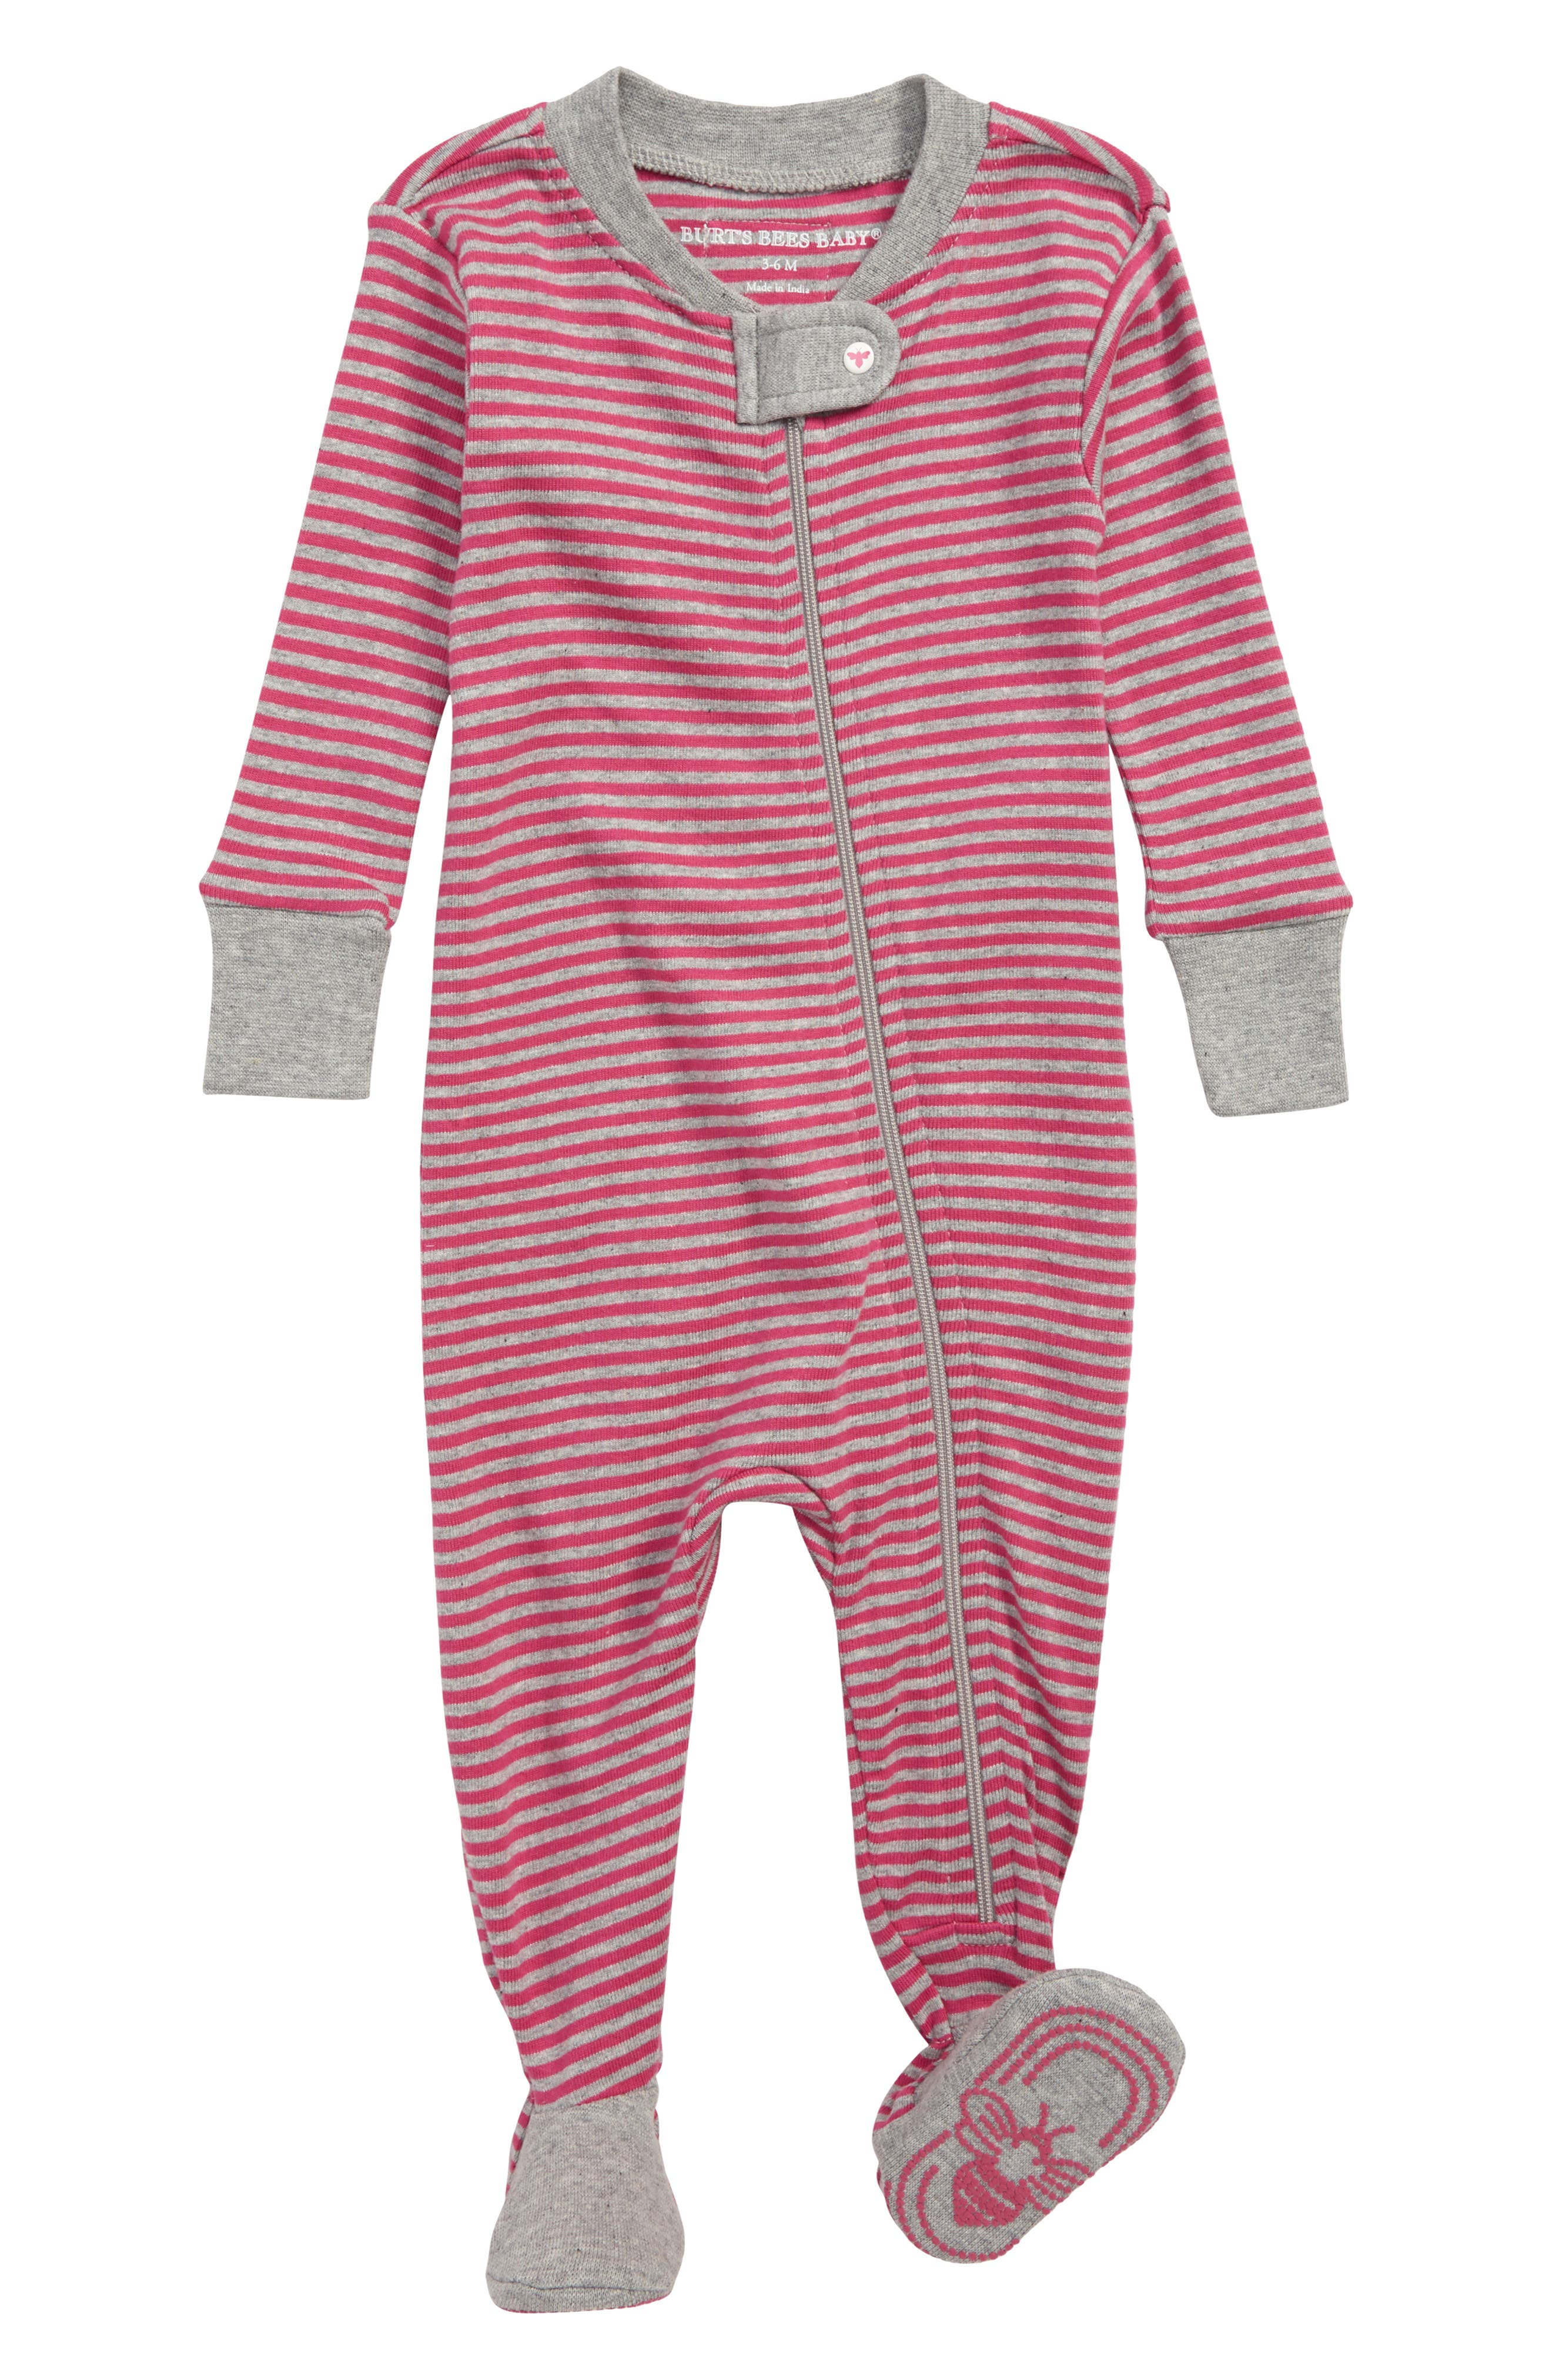 Stripe Fitted Footed One-Piece Pajamas,                             Main thumbnail 1, color,                             665